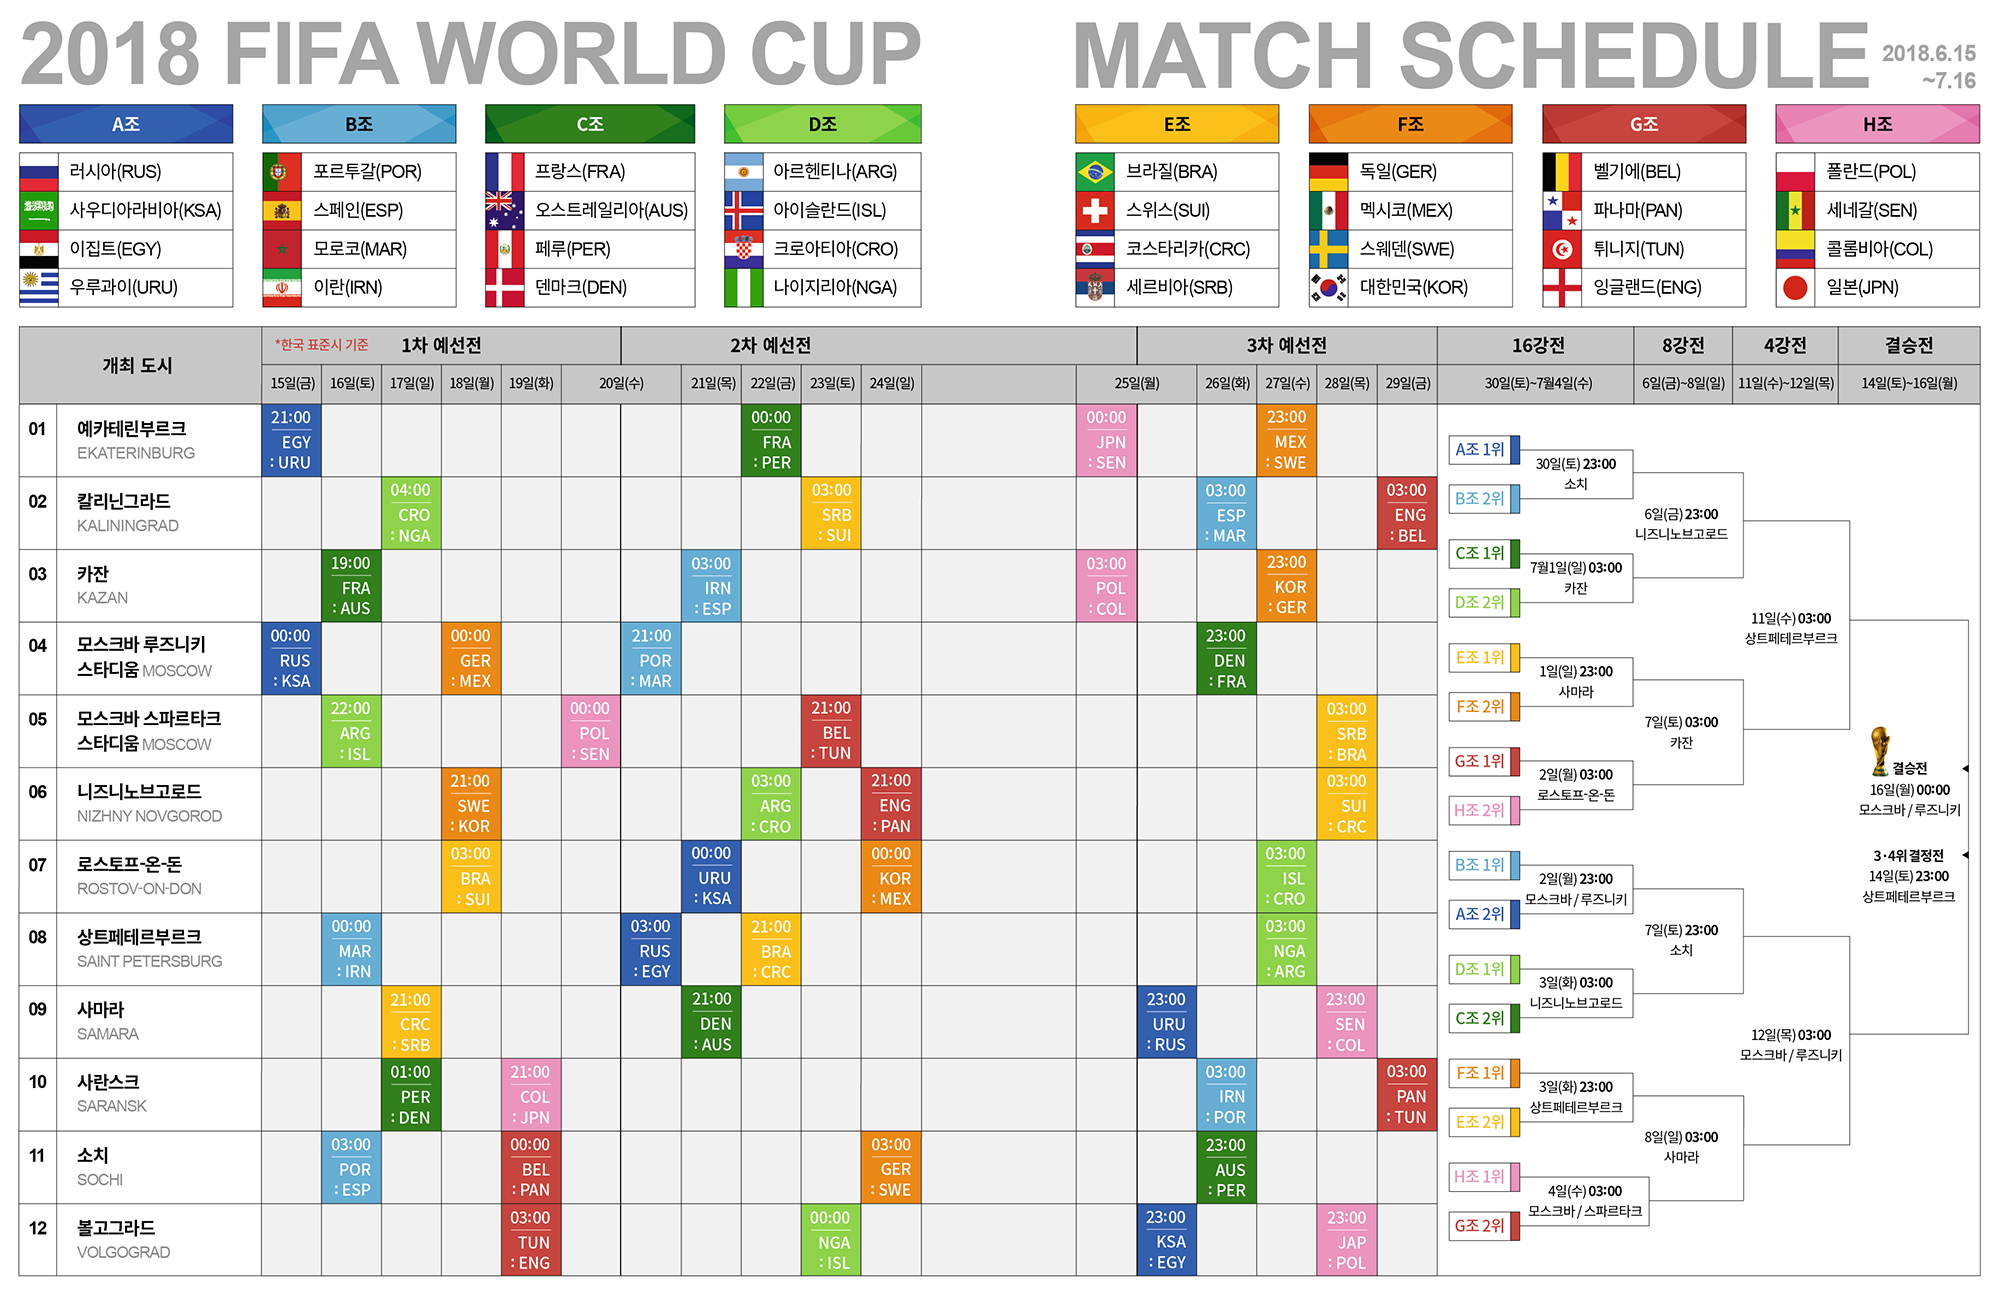 2018 FIFA WORLD CUP MATCH SCHEDULE